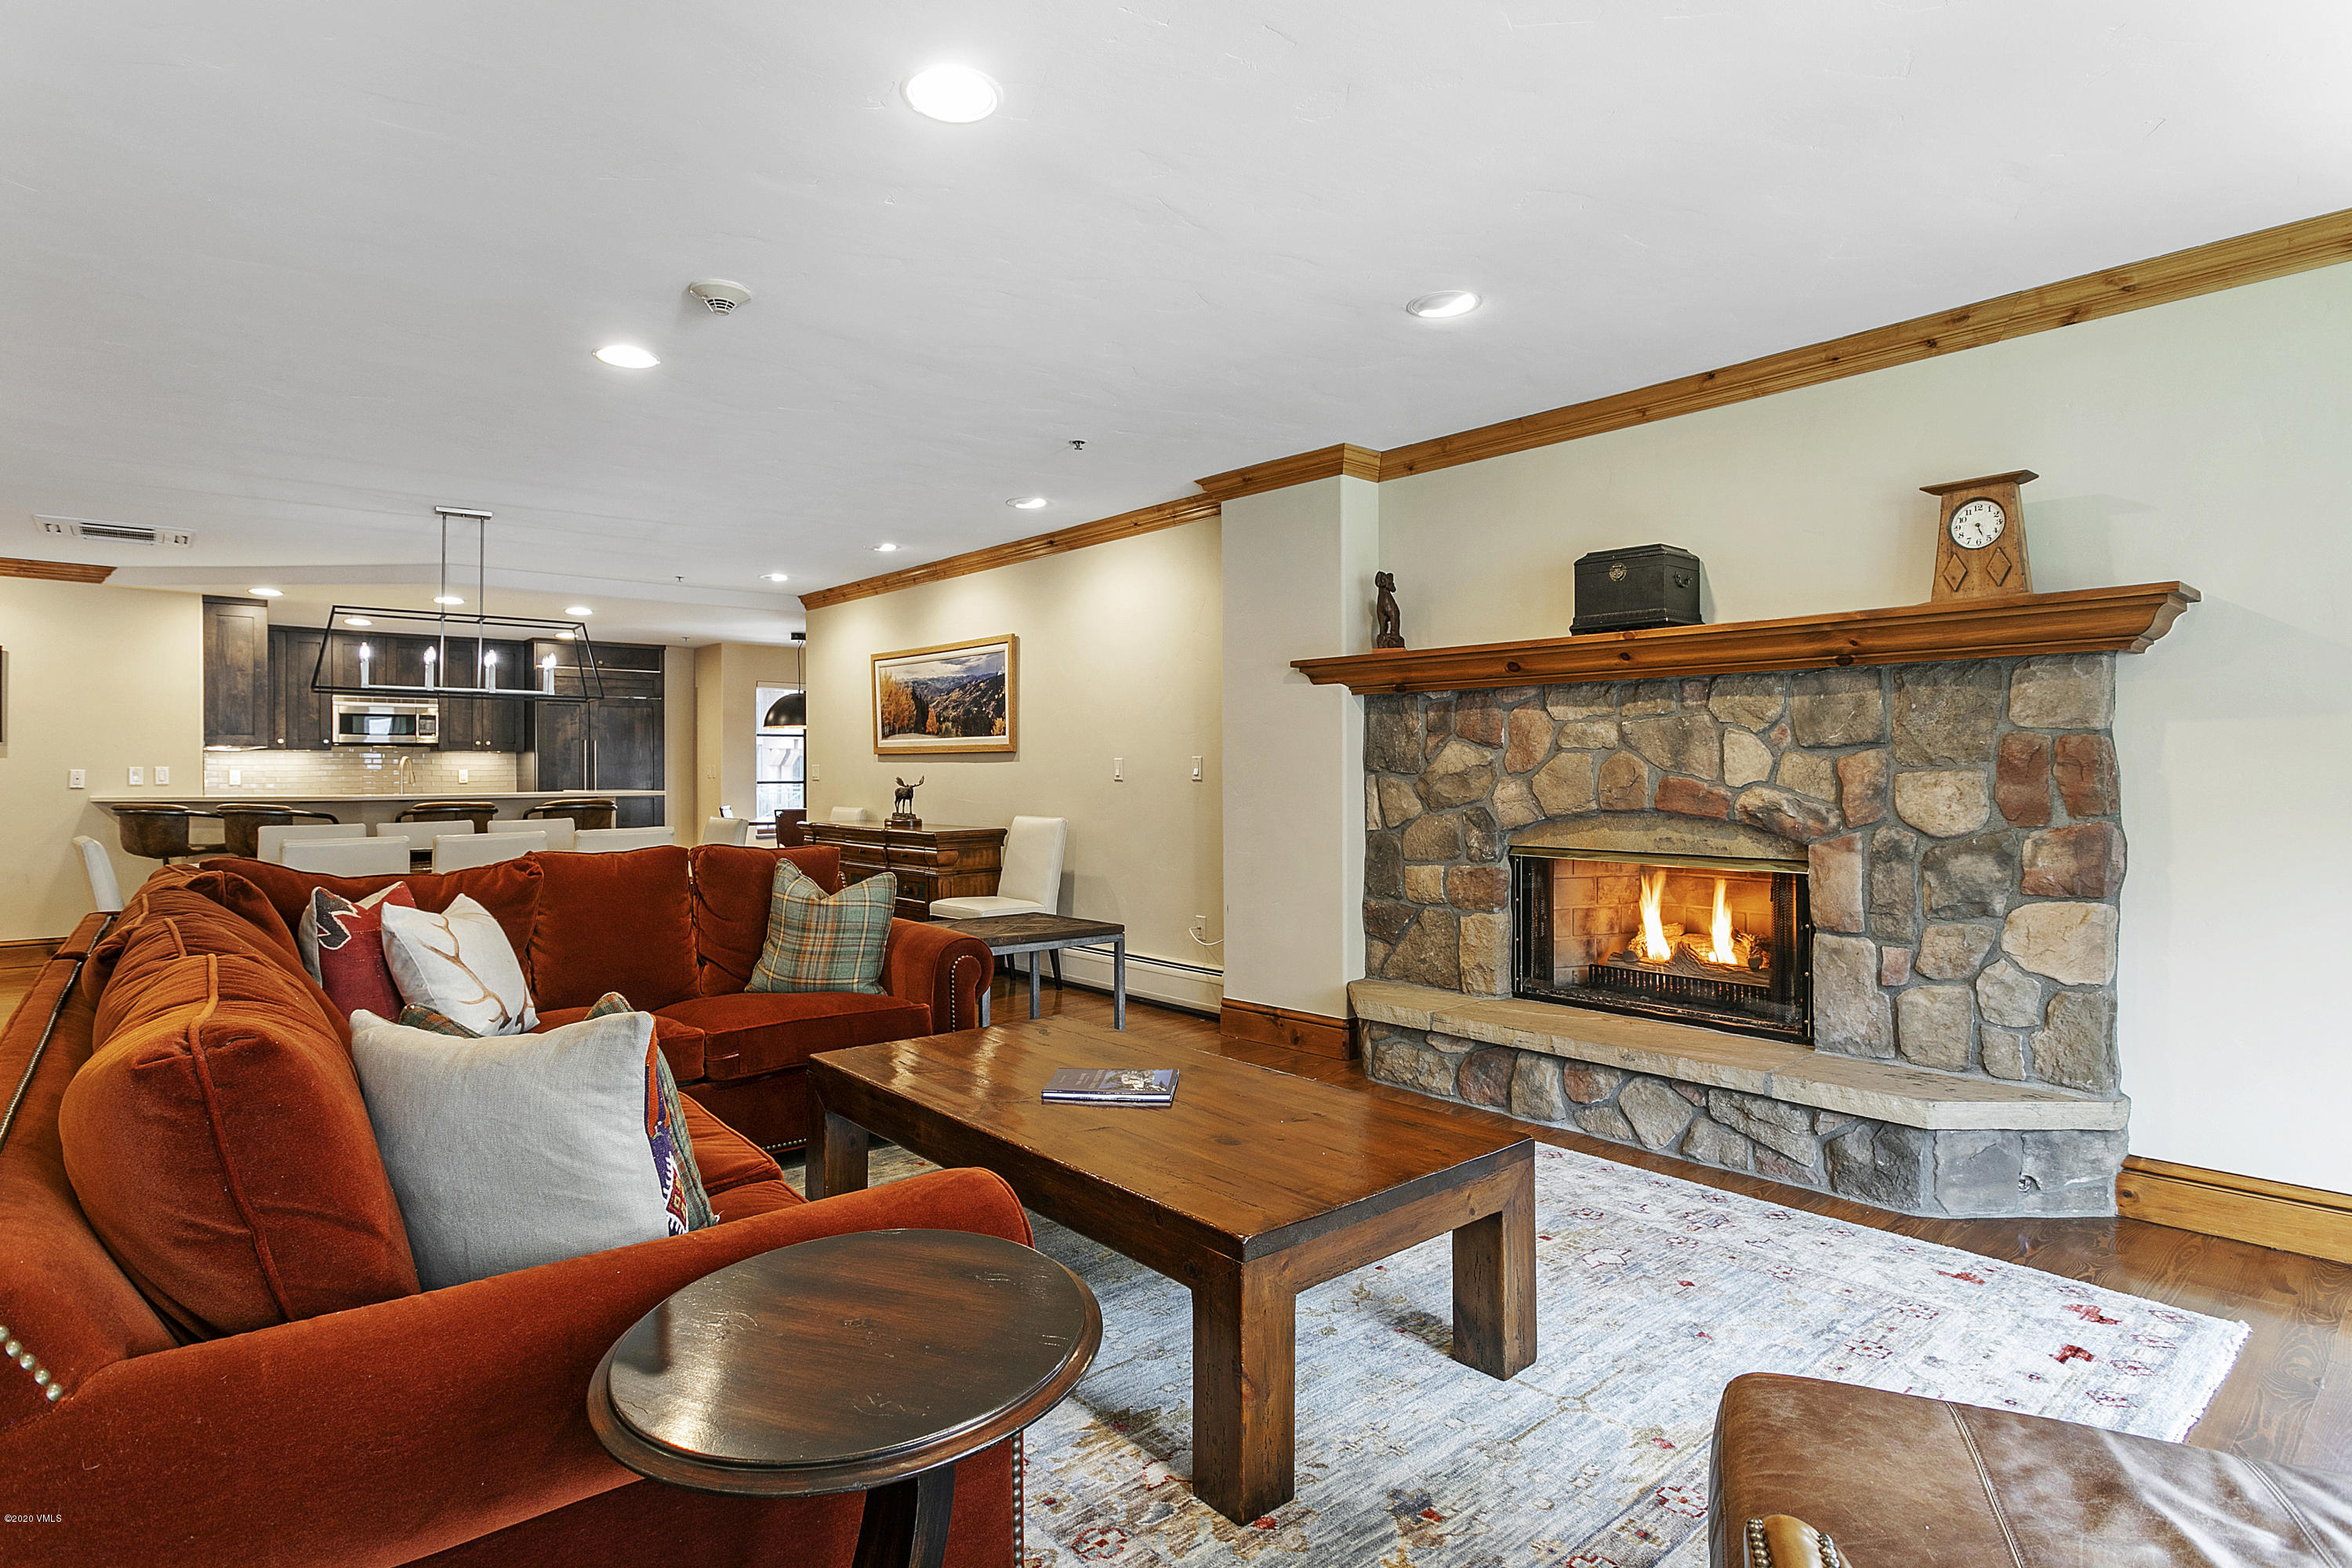 The centerpiece of Beaver Creek's charming and exclusive European village, the residences at Market Square define ''location, location, location.'' Completely and tastefully renovated 4-bedroom/4-bath, single-level luxury home with open floorplan. Fully-furnished, and turn-key. The discerning buyer will appreciate that every detail has been tended to in a fresh transitional finish with mountain contemporary and warm traditional furnishings, together with the addition of central air-conditioning throughout. Also included is a full Beaver Creek Club Membership offering robust amenities including fitness, spa, daily breakfast, golf, and loads of other benefits like first-tracks and exclusive lunch at Beano's Cabin. Enjoy panoramic mountain and village views from your private and heated balcony overlooking the ice rink as you sip your morning coffee and then your afternoon apres. Beaver Creek's world-renowned ski school and elite main-mountain terrain are convenient to all with the home's 100% ski-in/ski-out access that is easy enough for beginners. Gourmet kitchen with high-end appliances including Wolf gas stove-top and oversized solid wood custom cabinetry. Large living spaces. Ensuite baths. Hardwood floors. All-new plush carpeting, custom light fixtures, quartz countertops, and two gas fireplaces adorned with natural stone. Parking is simple and secure in the dedicated and heated garage. Proceed directly to your door without venturing through a common lobby. Capitalize on a rental history of repeat guests and dozens of 5-star reviews. Venture downstairs to the Vilar Performing Arts Center, shopping, dining, ice-skating, and year-round programming, all without stairs or the need for shuttles. Escape the city and move home to the mountains.  (Seller will include the Full Beaver Creek Membership with a full priced offer).